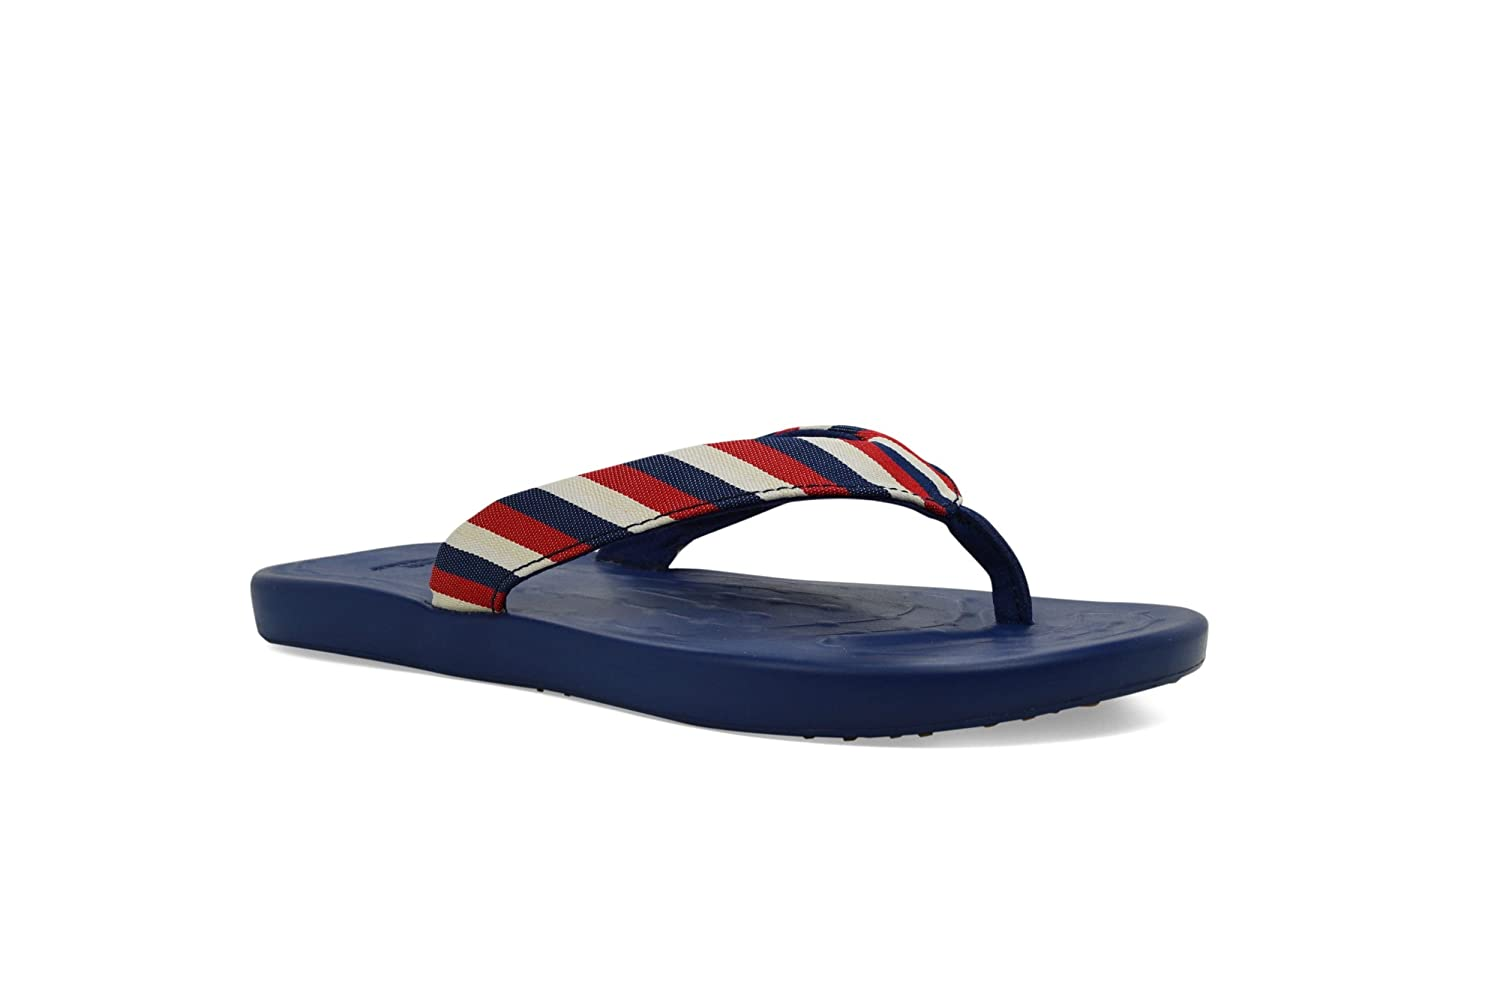 SoftScience The Waterfall Stripe Damen Sandalen Zehentrenner Navy